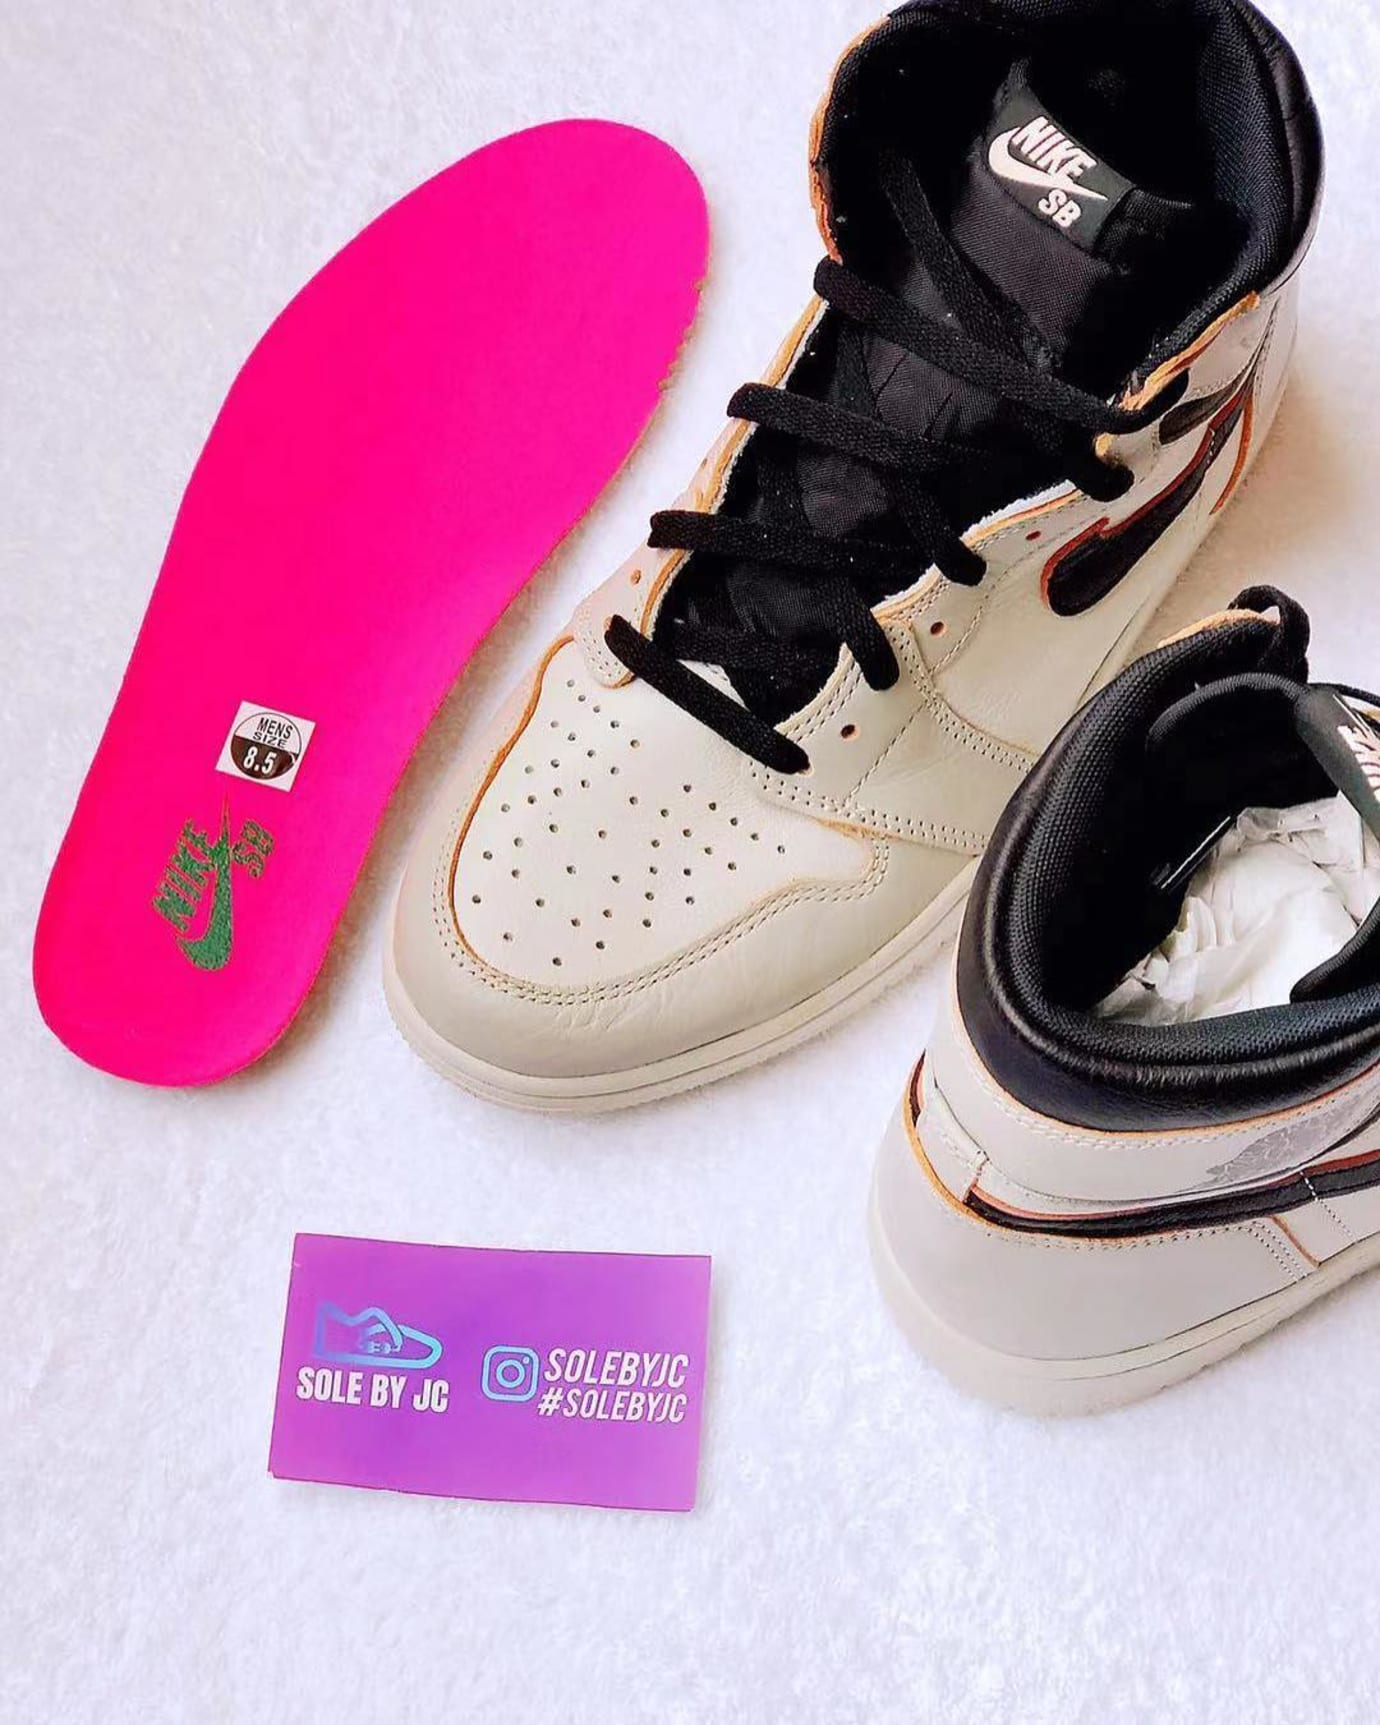 Nike SB x Air Jordan 1 'Light Bone/Crimson Tint-Hyper Pink-Black' CD6578-006 3